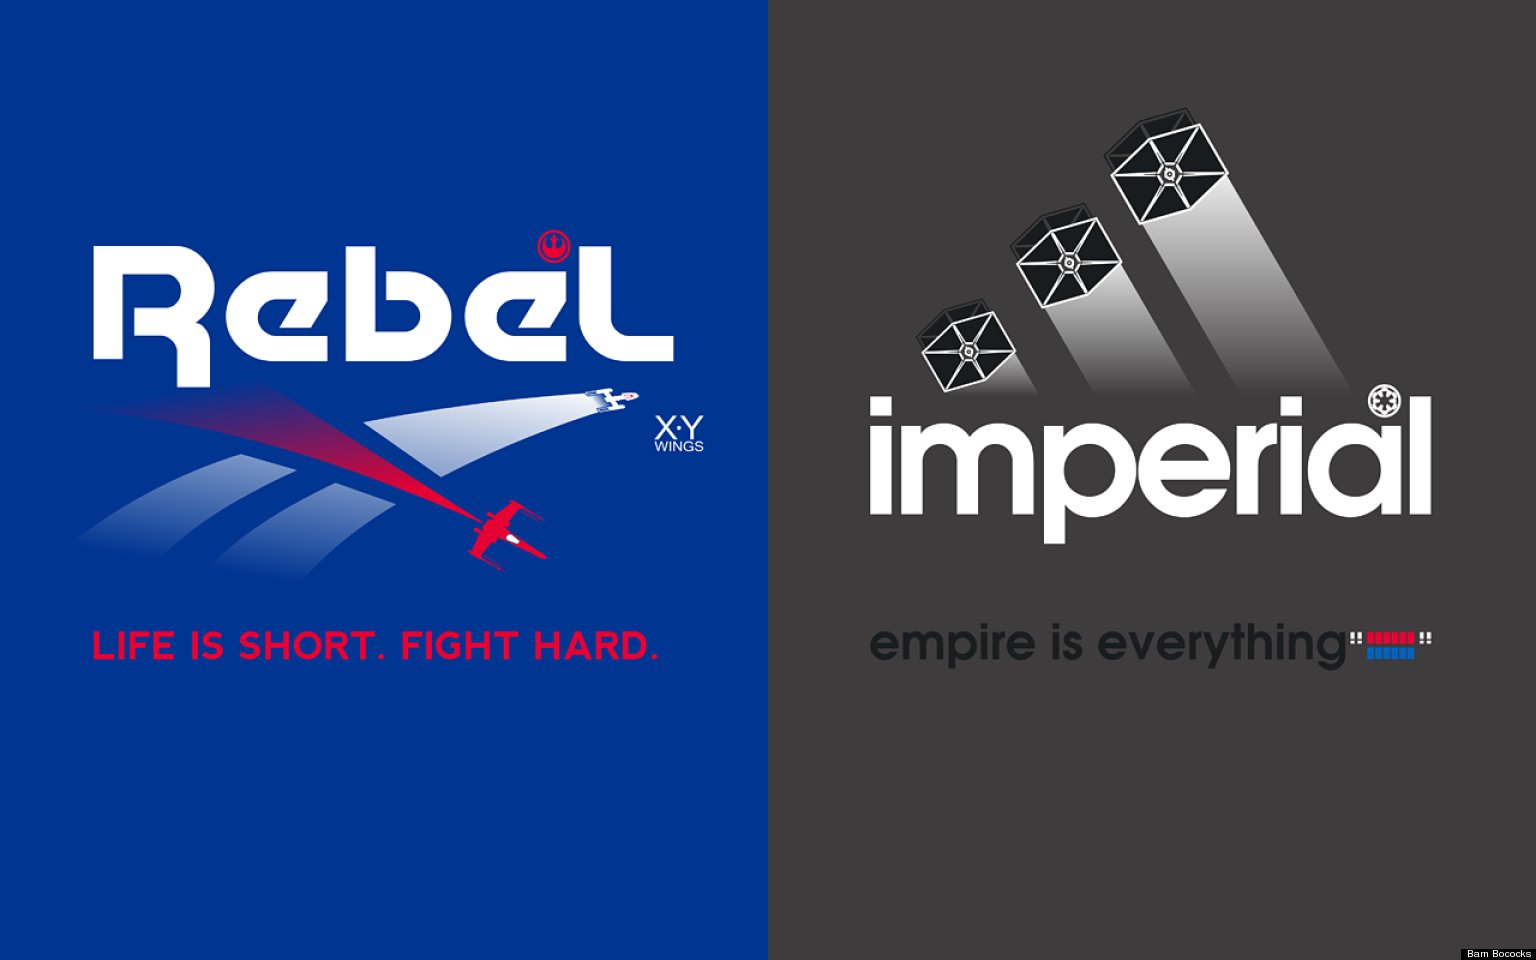 If Star Wars Characters Were Brands...